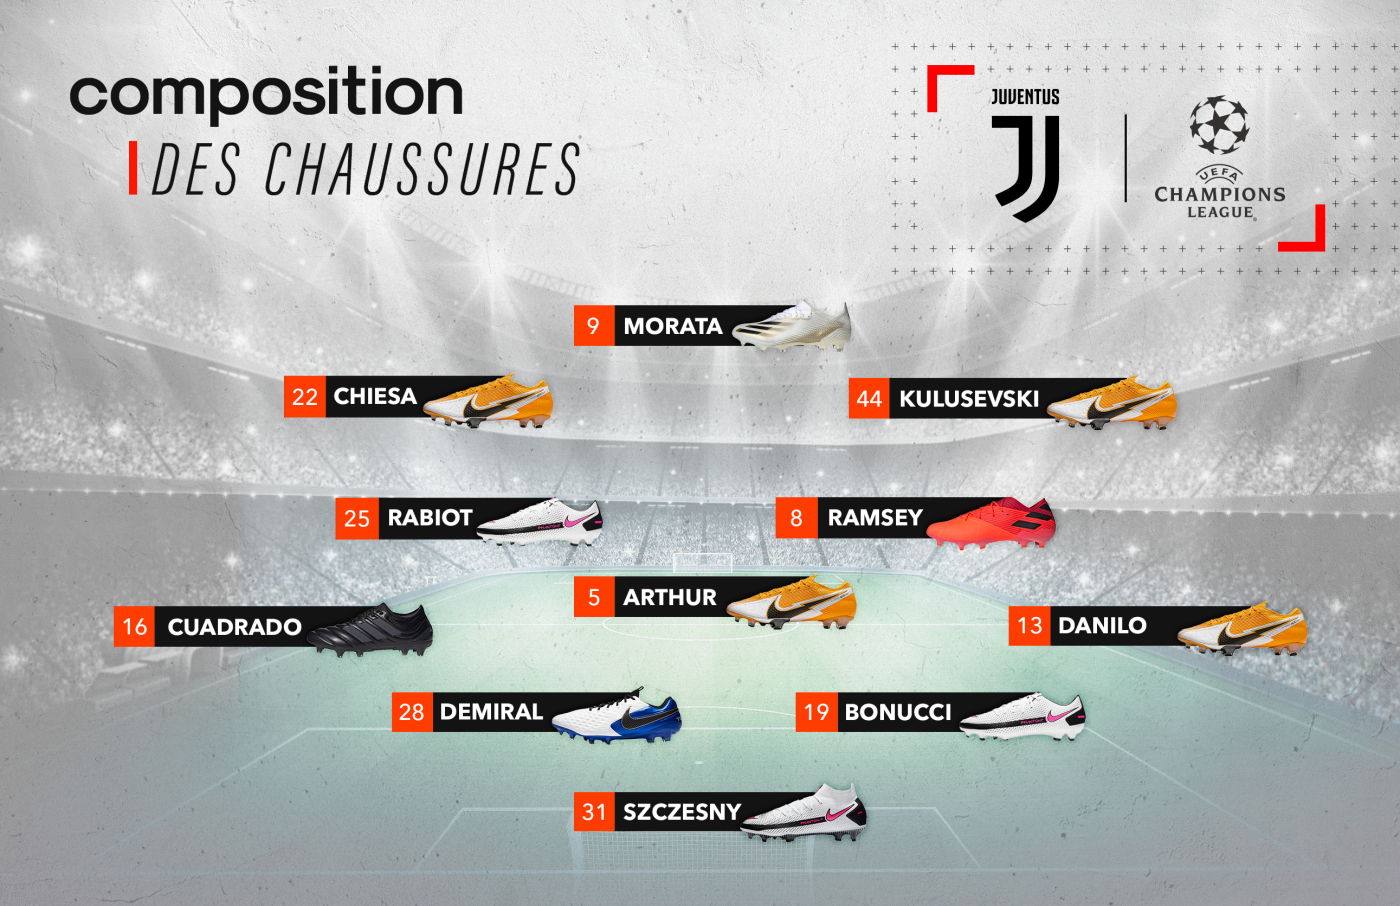 compositions-chaussures-juventus-fc-barcelone(1)